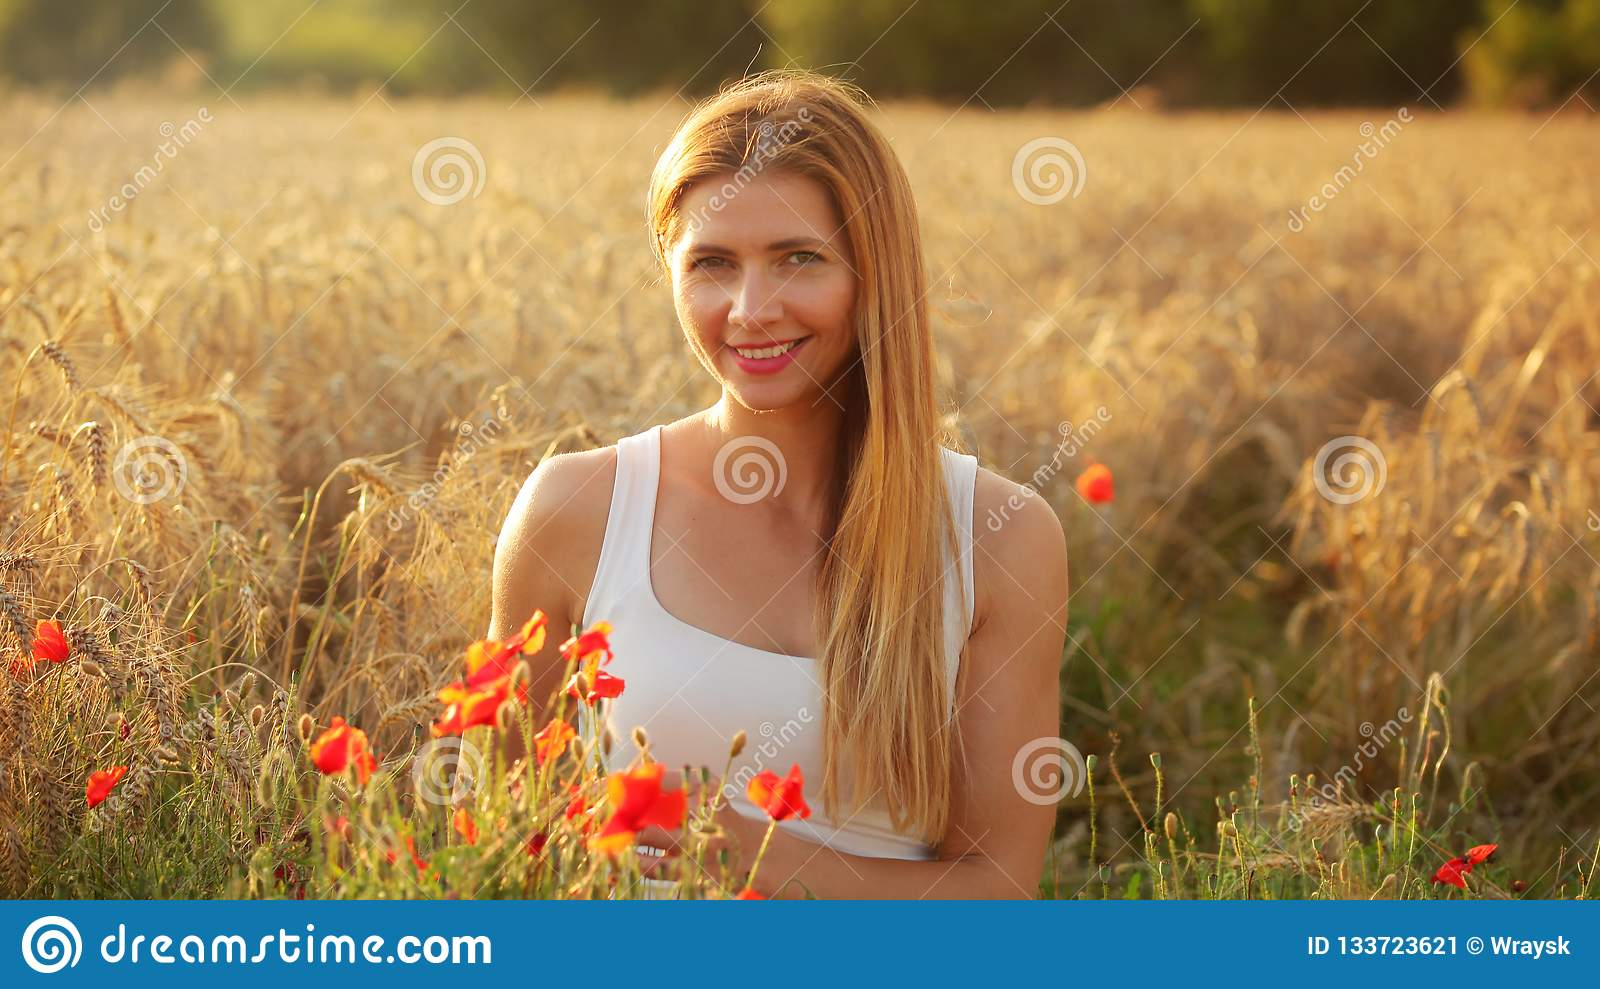 Young woman sitting in wheat field, lit by afternoon sun, few re